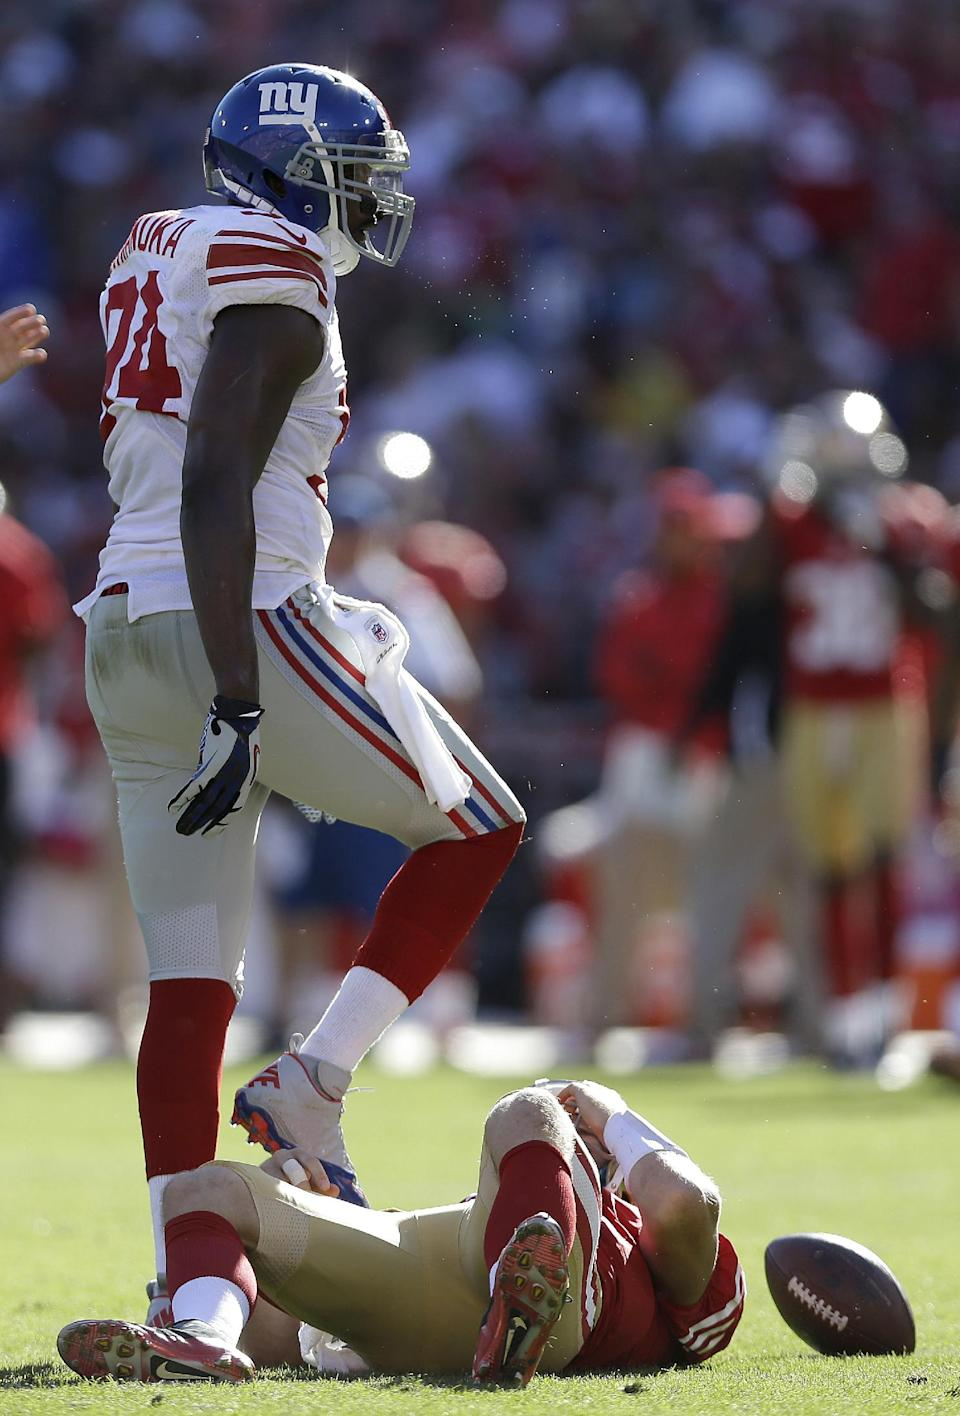 New York Giants outside linebacker Mathias Kiwanuka (94) stands over San Francisco 49ers quarterback Alex Smith (11) after sacking him during the fourth quarter of an NFL football game in San Francisco, Sunday, Oct. 14, 2012. The Giants 26-3. (AP Photo/Marcio Jose Sanchez)